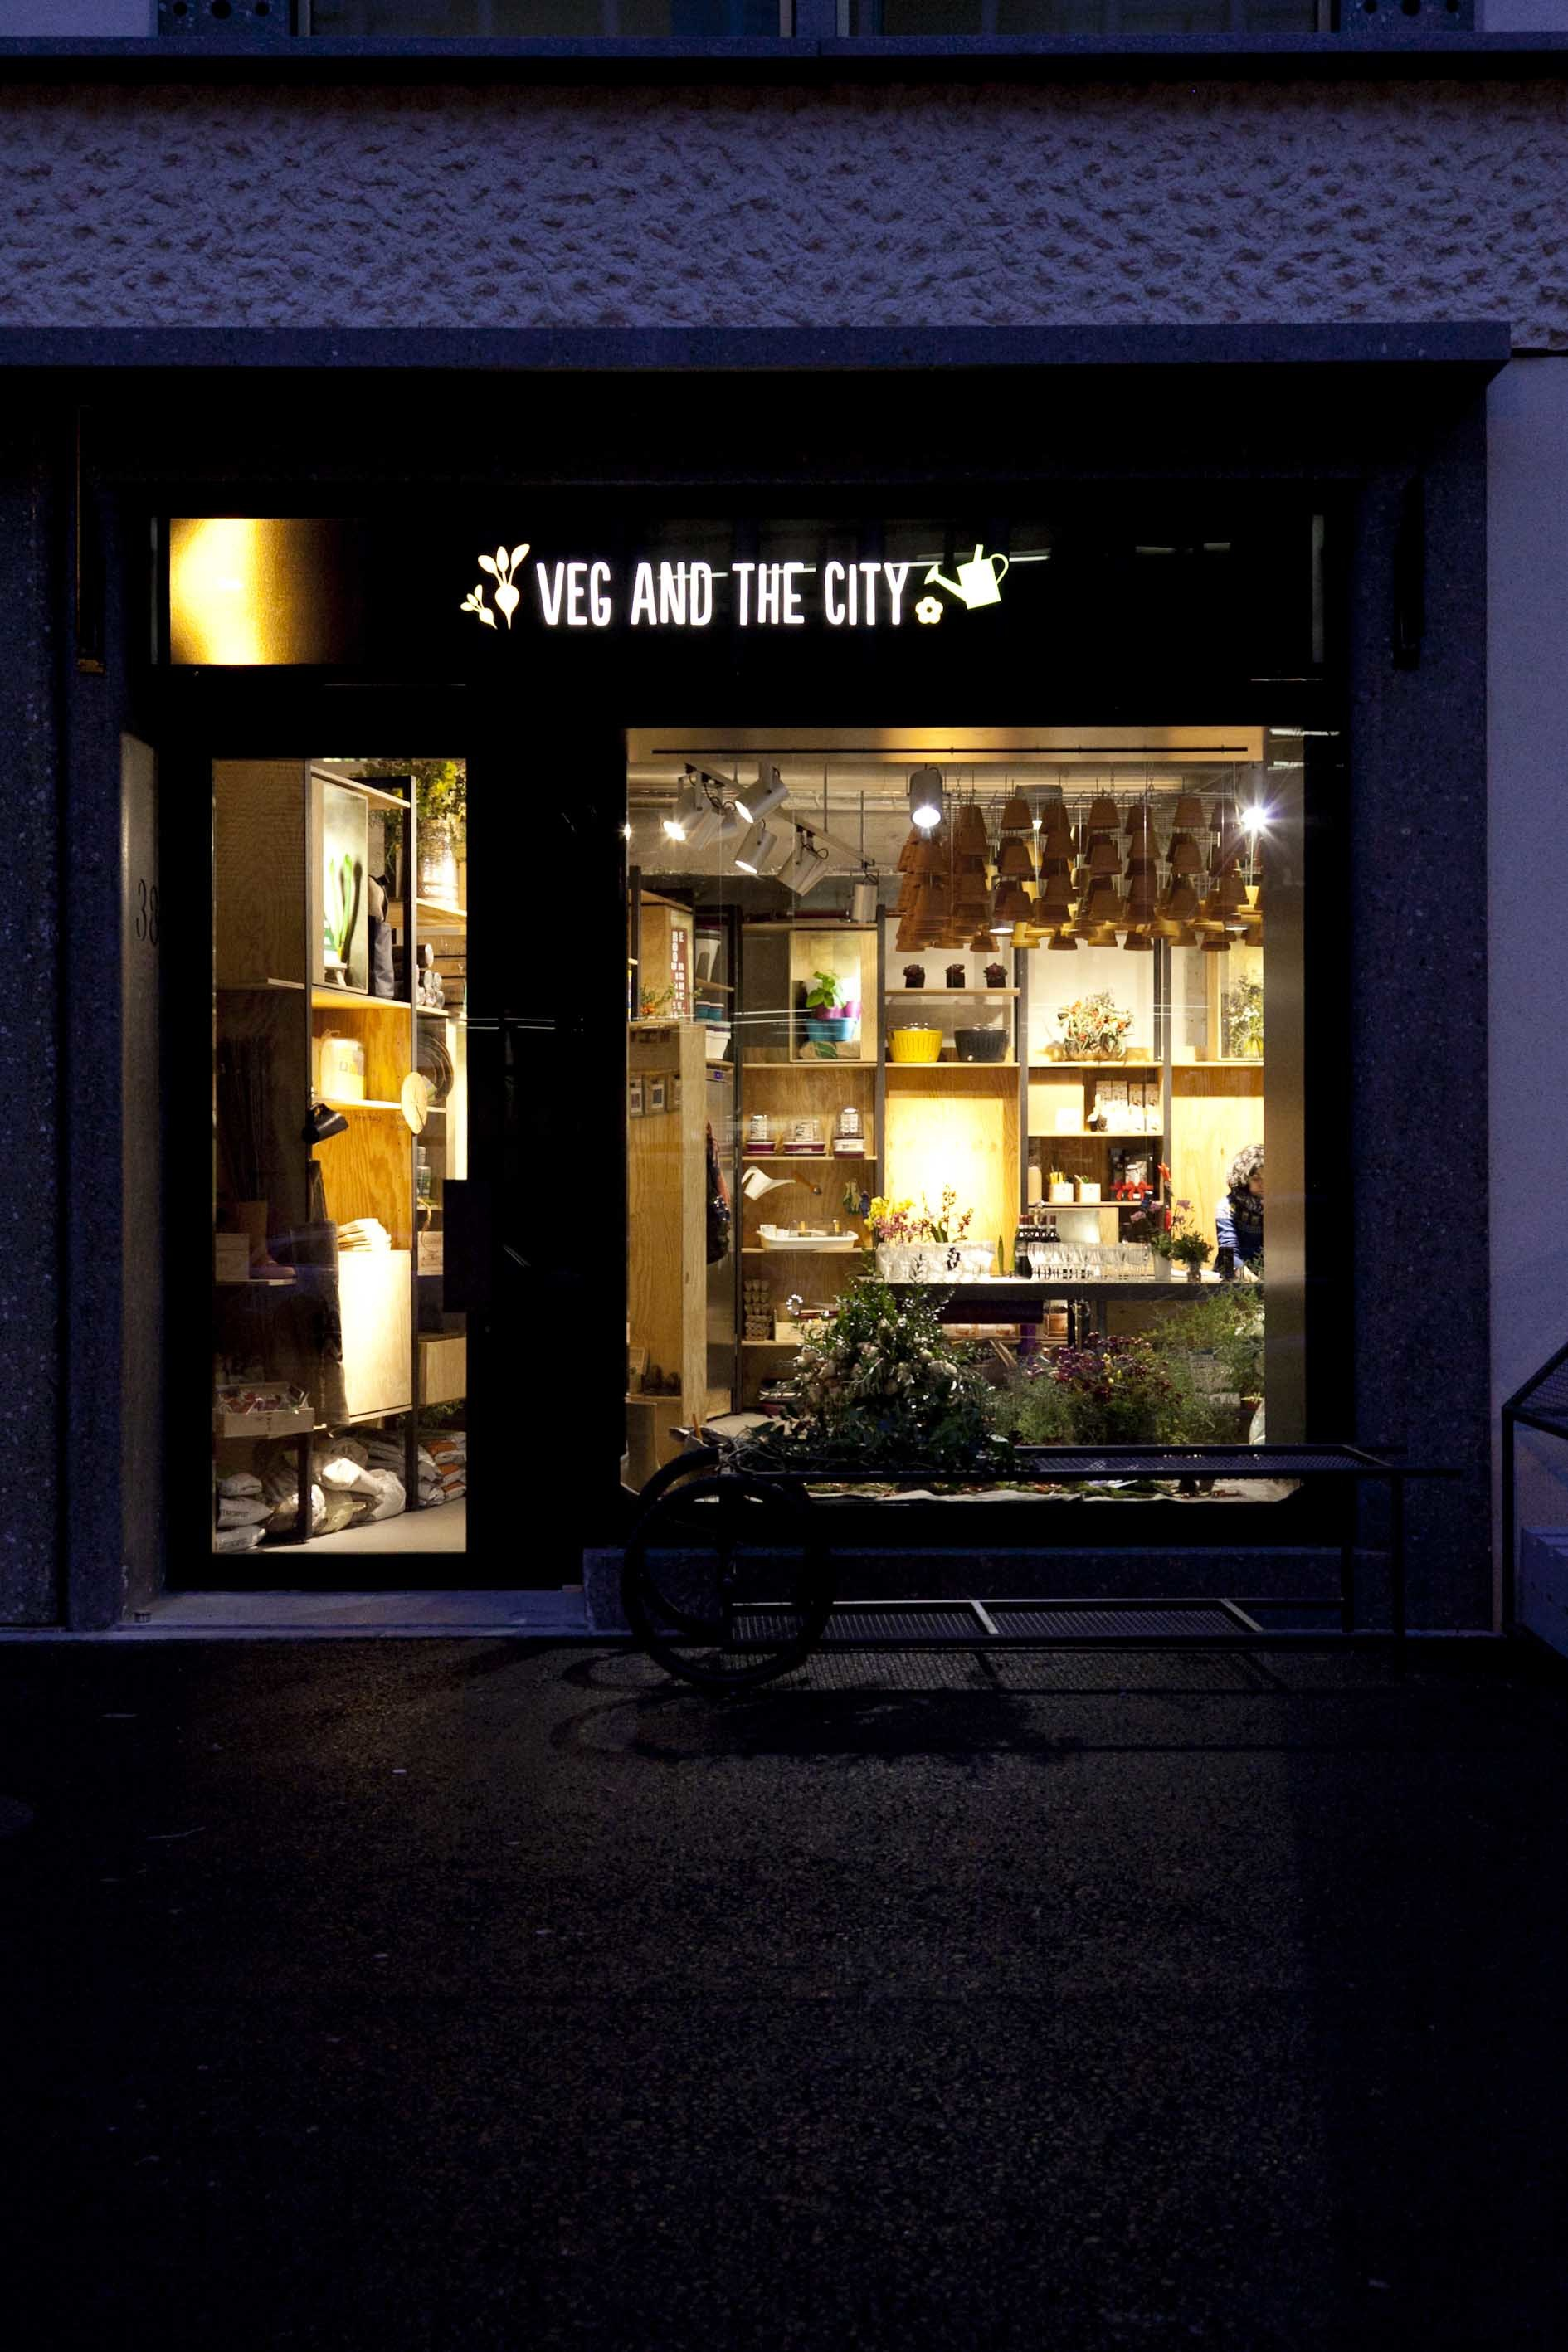 Veg and the City is an urban gardening store in Zürich